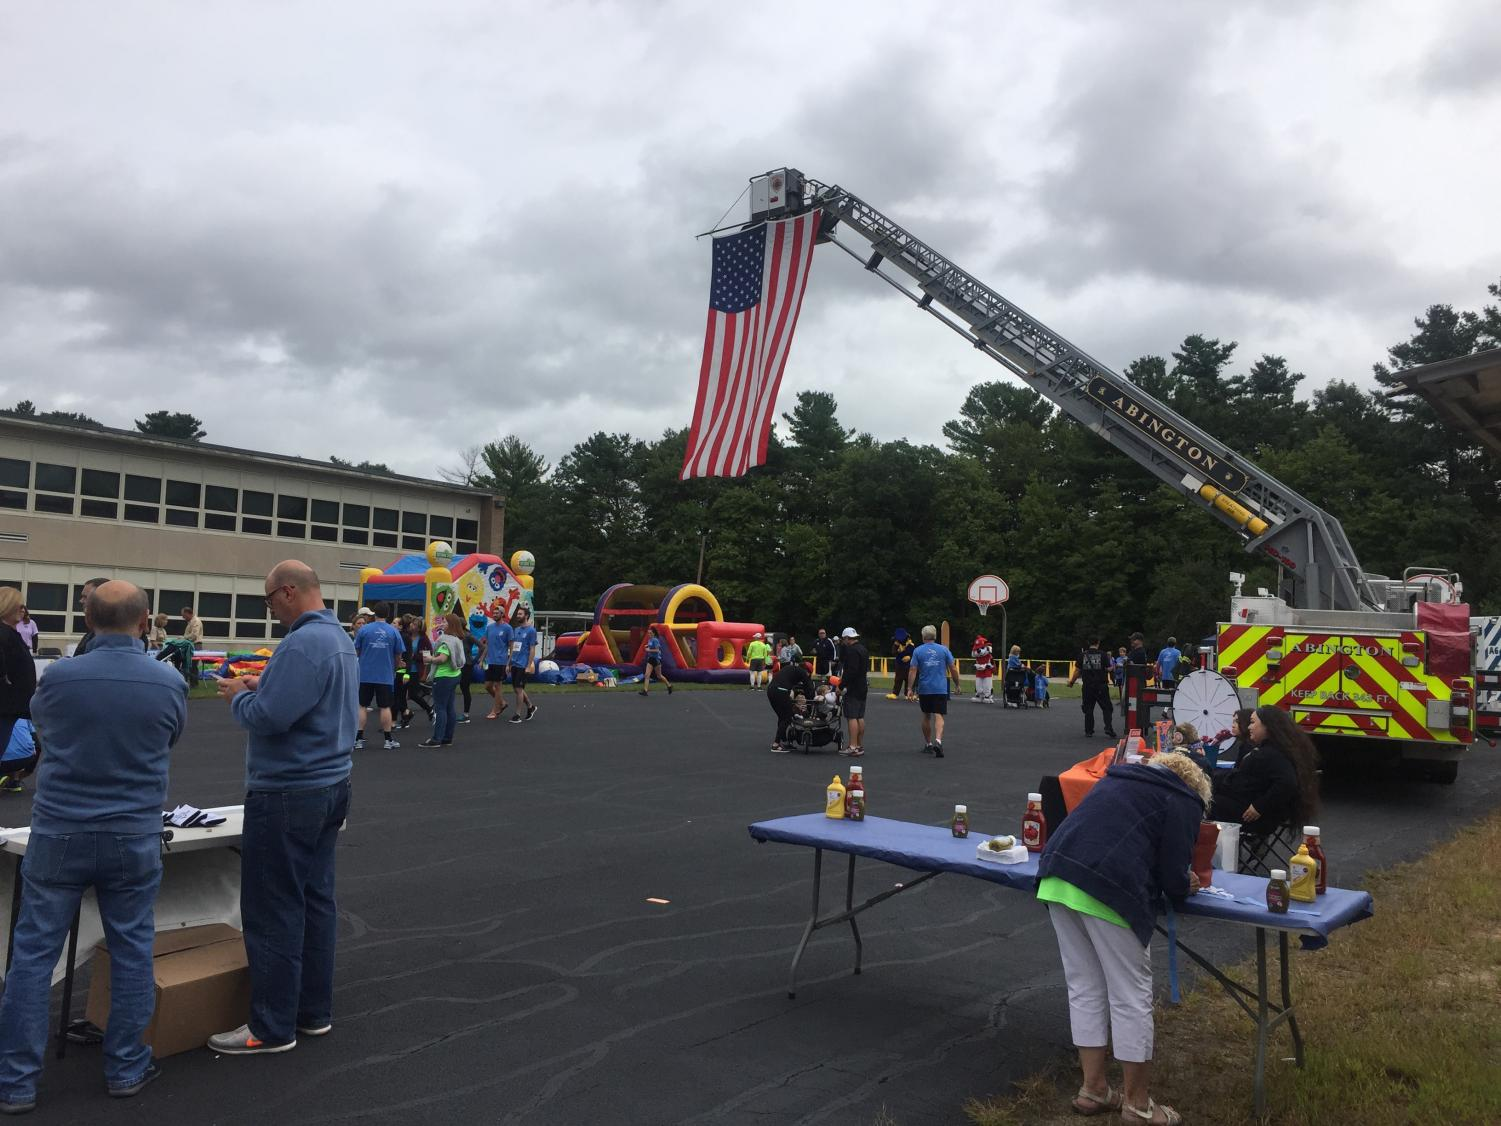 The Coombs Memorial Race was held on Sunday, September 15, 2019 and again featured a large American Flag like this one displayed last year on September 12, 2018.